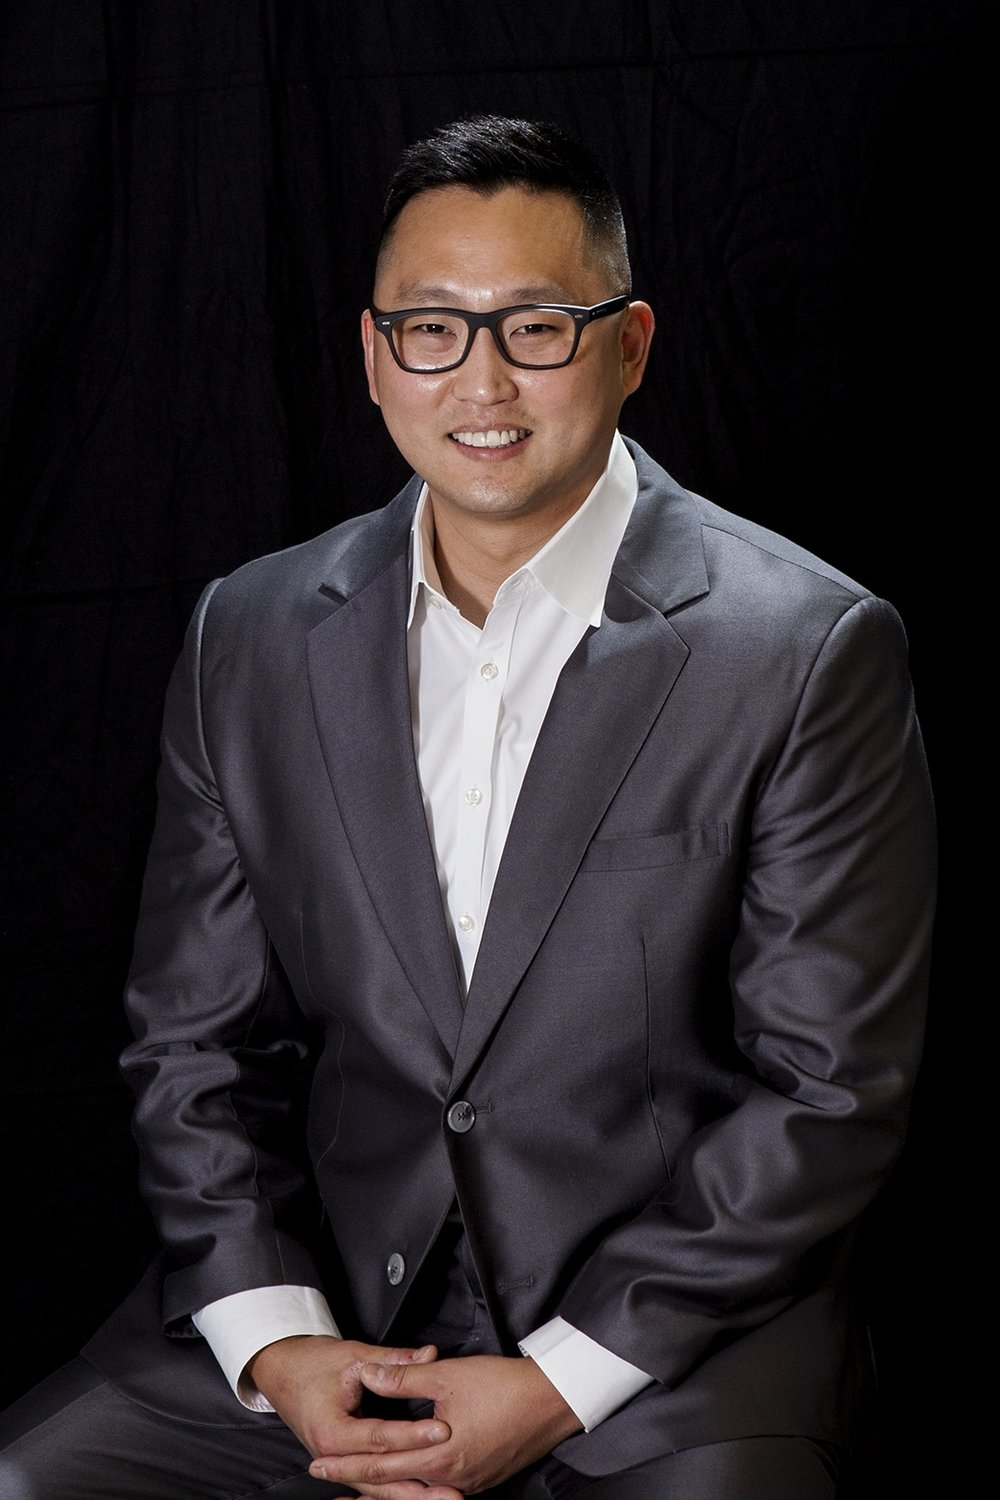 SJ Lee - Executive Director7th DegreeMaster of ScienceMaster of Business Administration